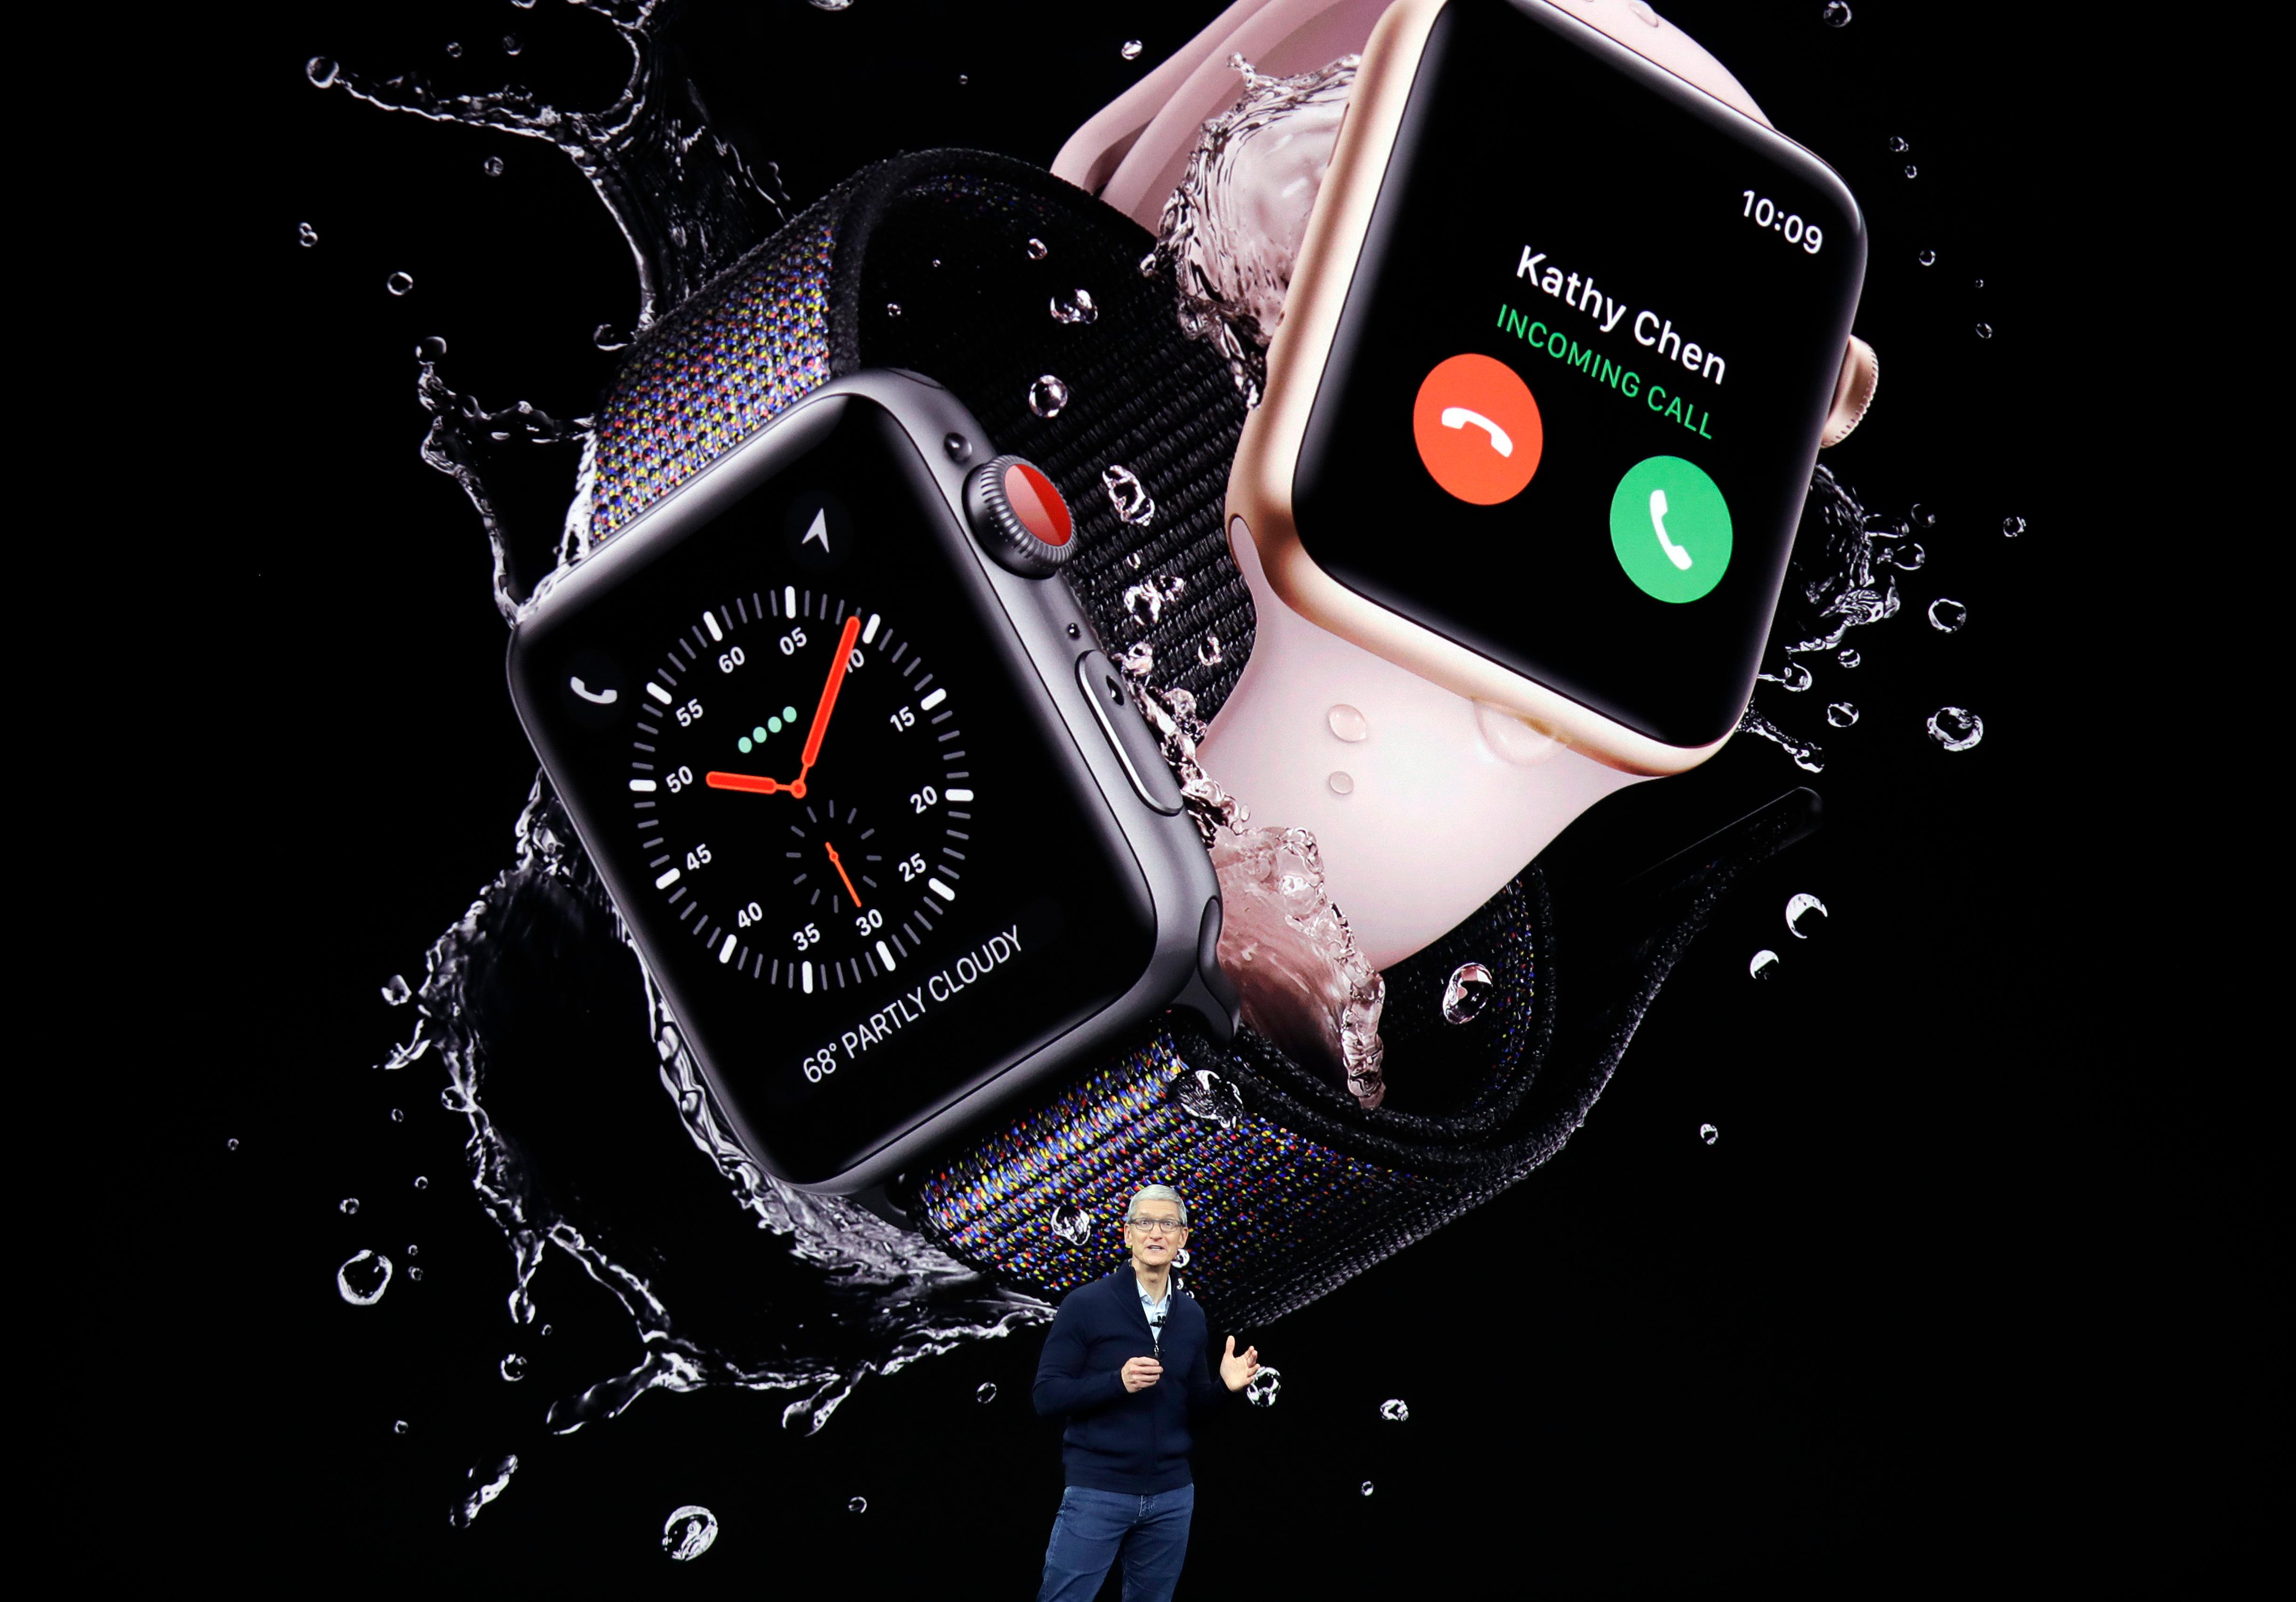 Apple CEO Tim Cook, shows new Apple Watch Series 3 product at the Steve Jobs Theater on the new Apple campus on Tuesday, Sept. 12, 2017, in Cupertino, Calif. (AP Photo/Marcio Jose Sanchez)